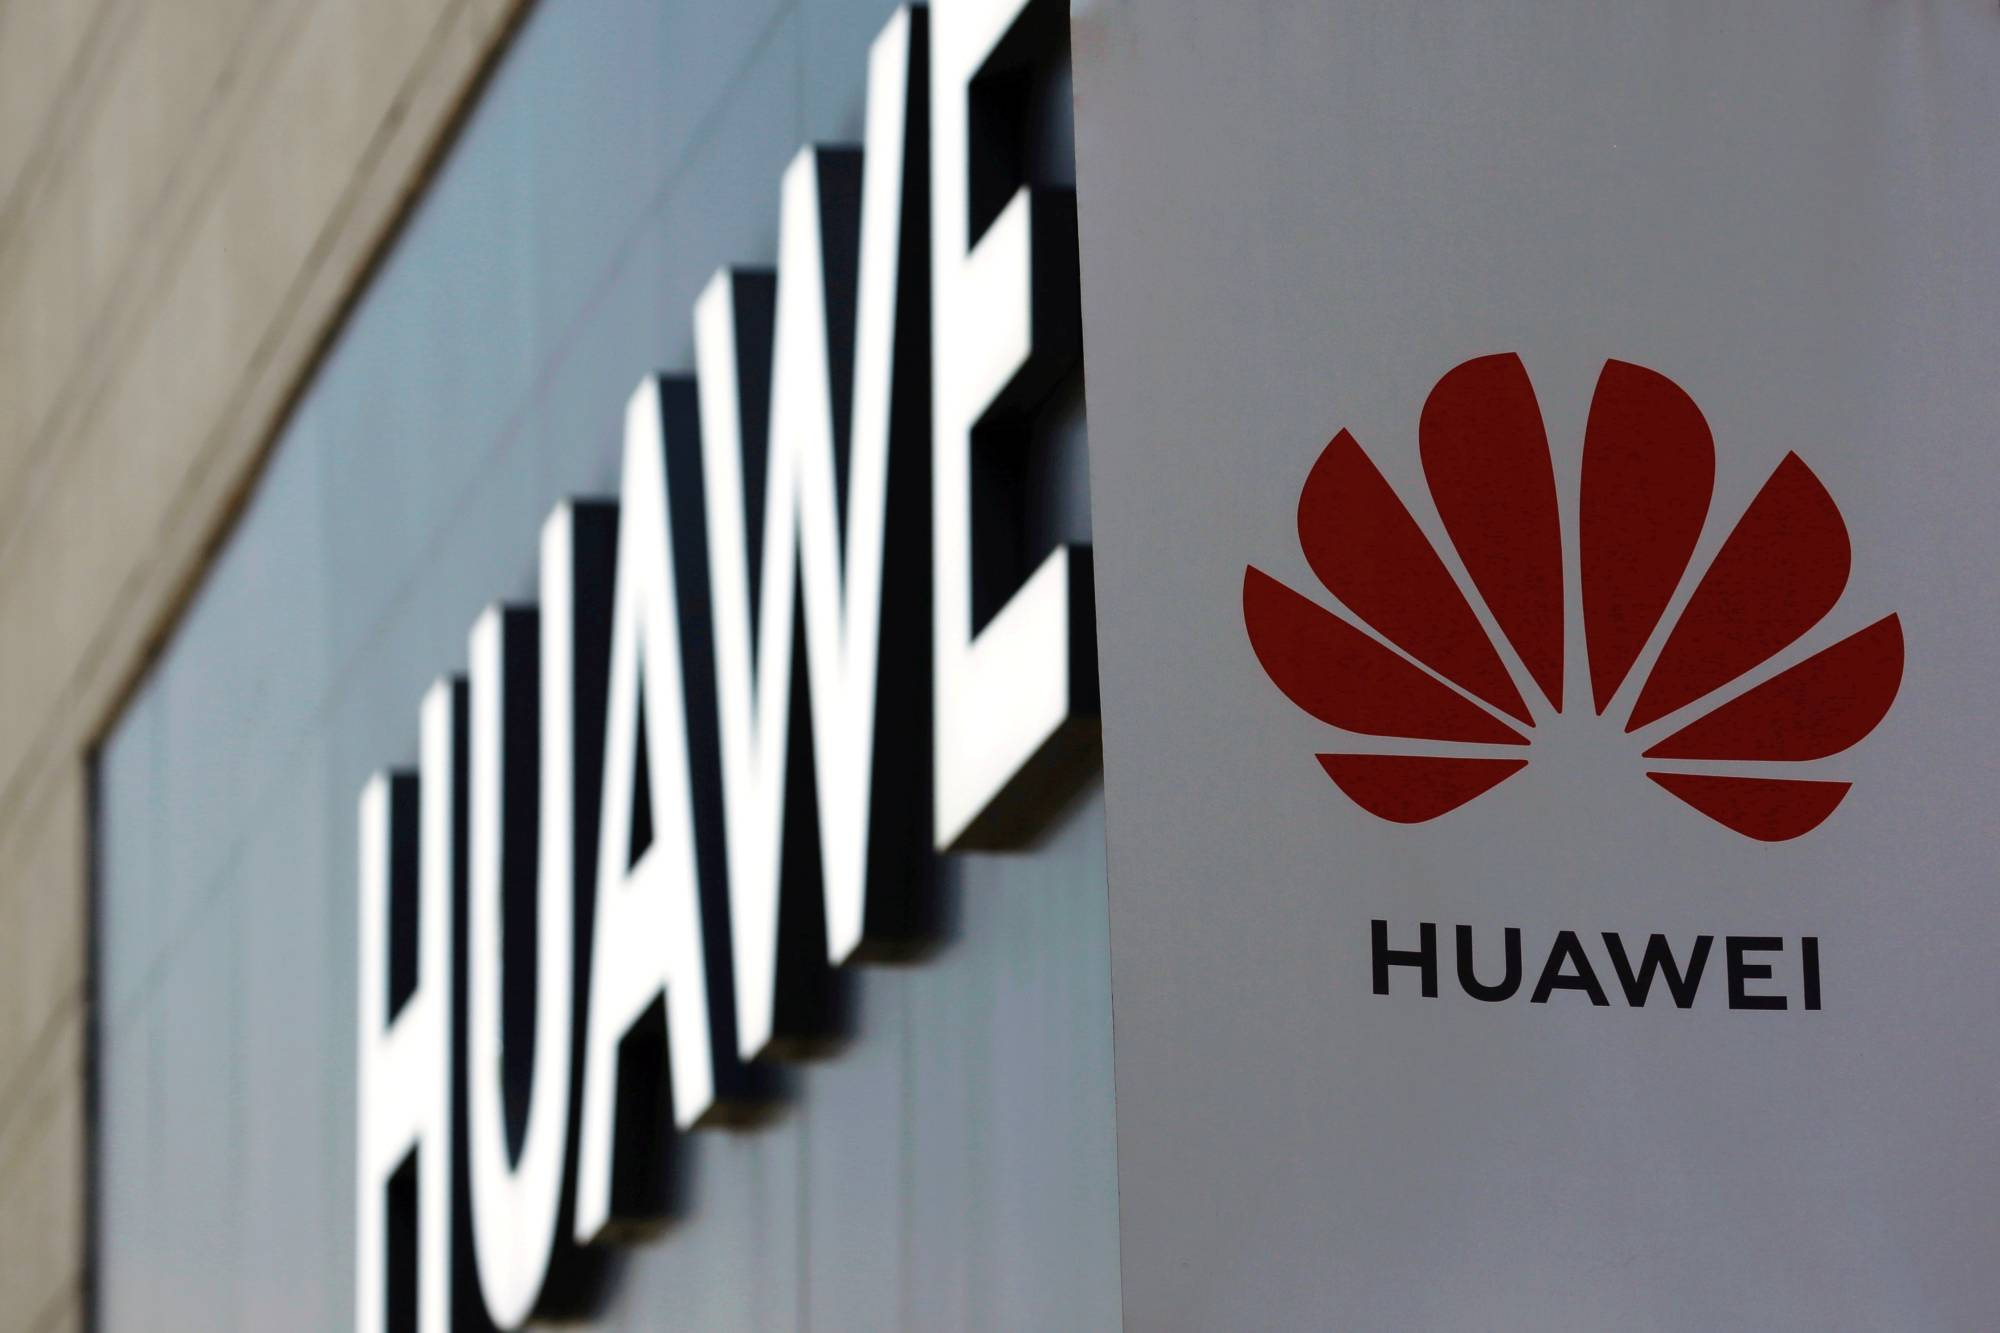 The Trump administration said Monday it will further tighten restrictions on Huawei, aimed at cracking down on its access to commercially available chips. | REUTERS